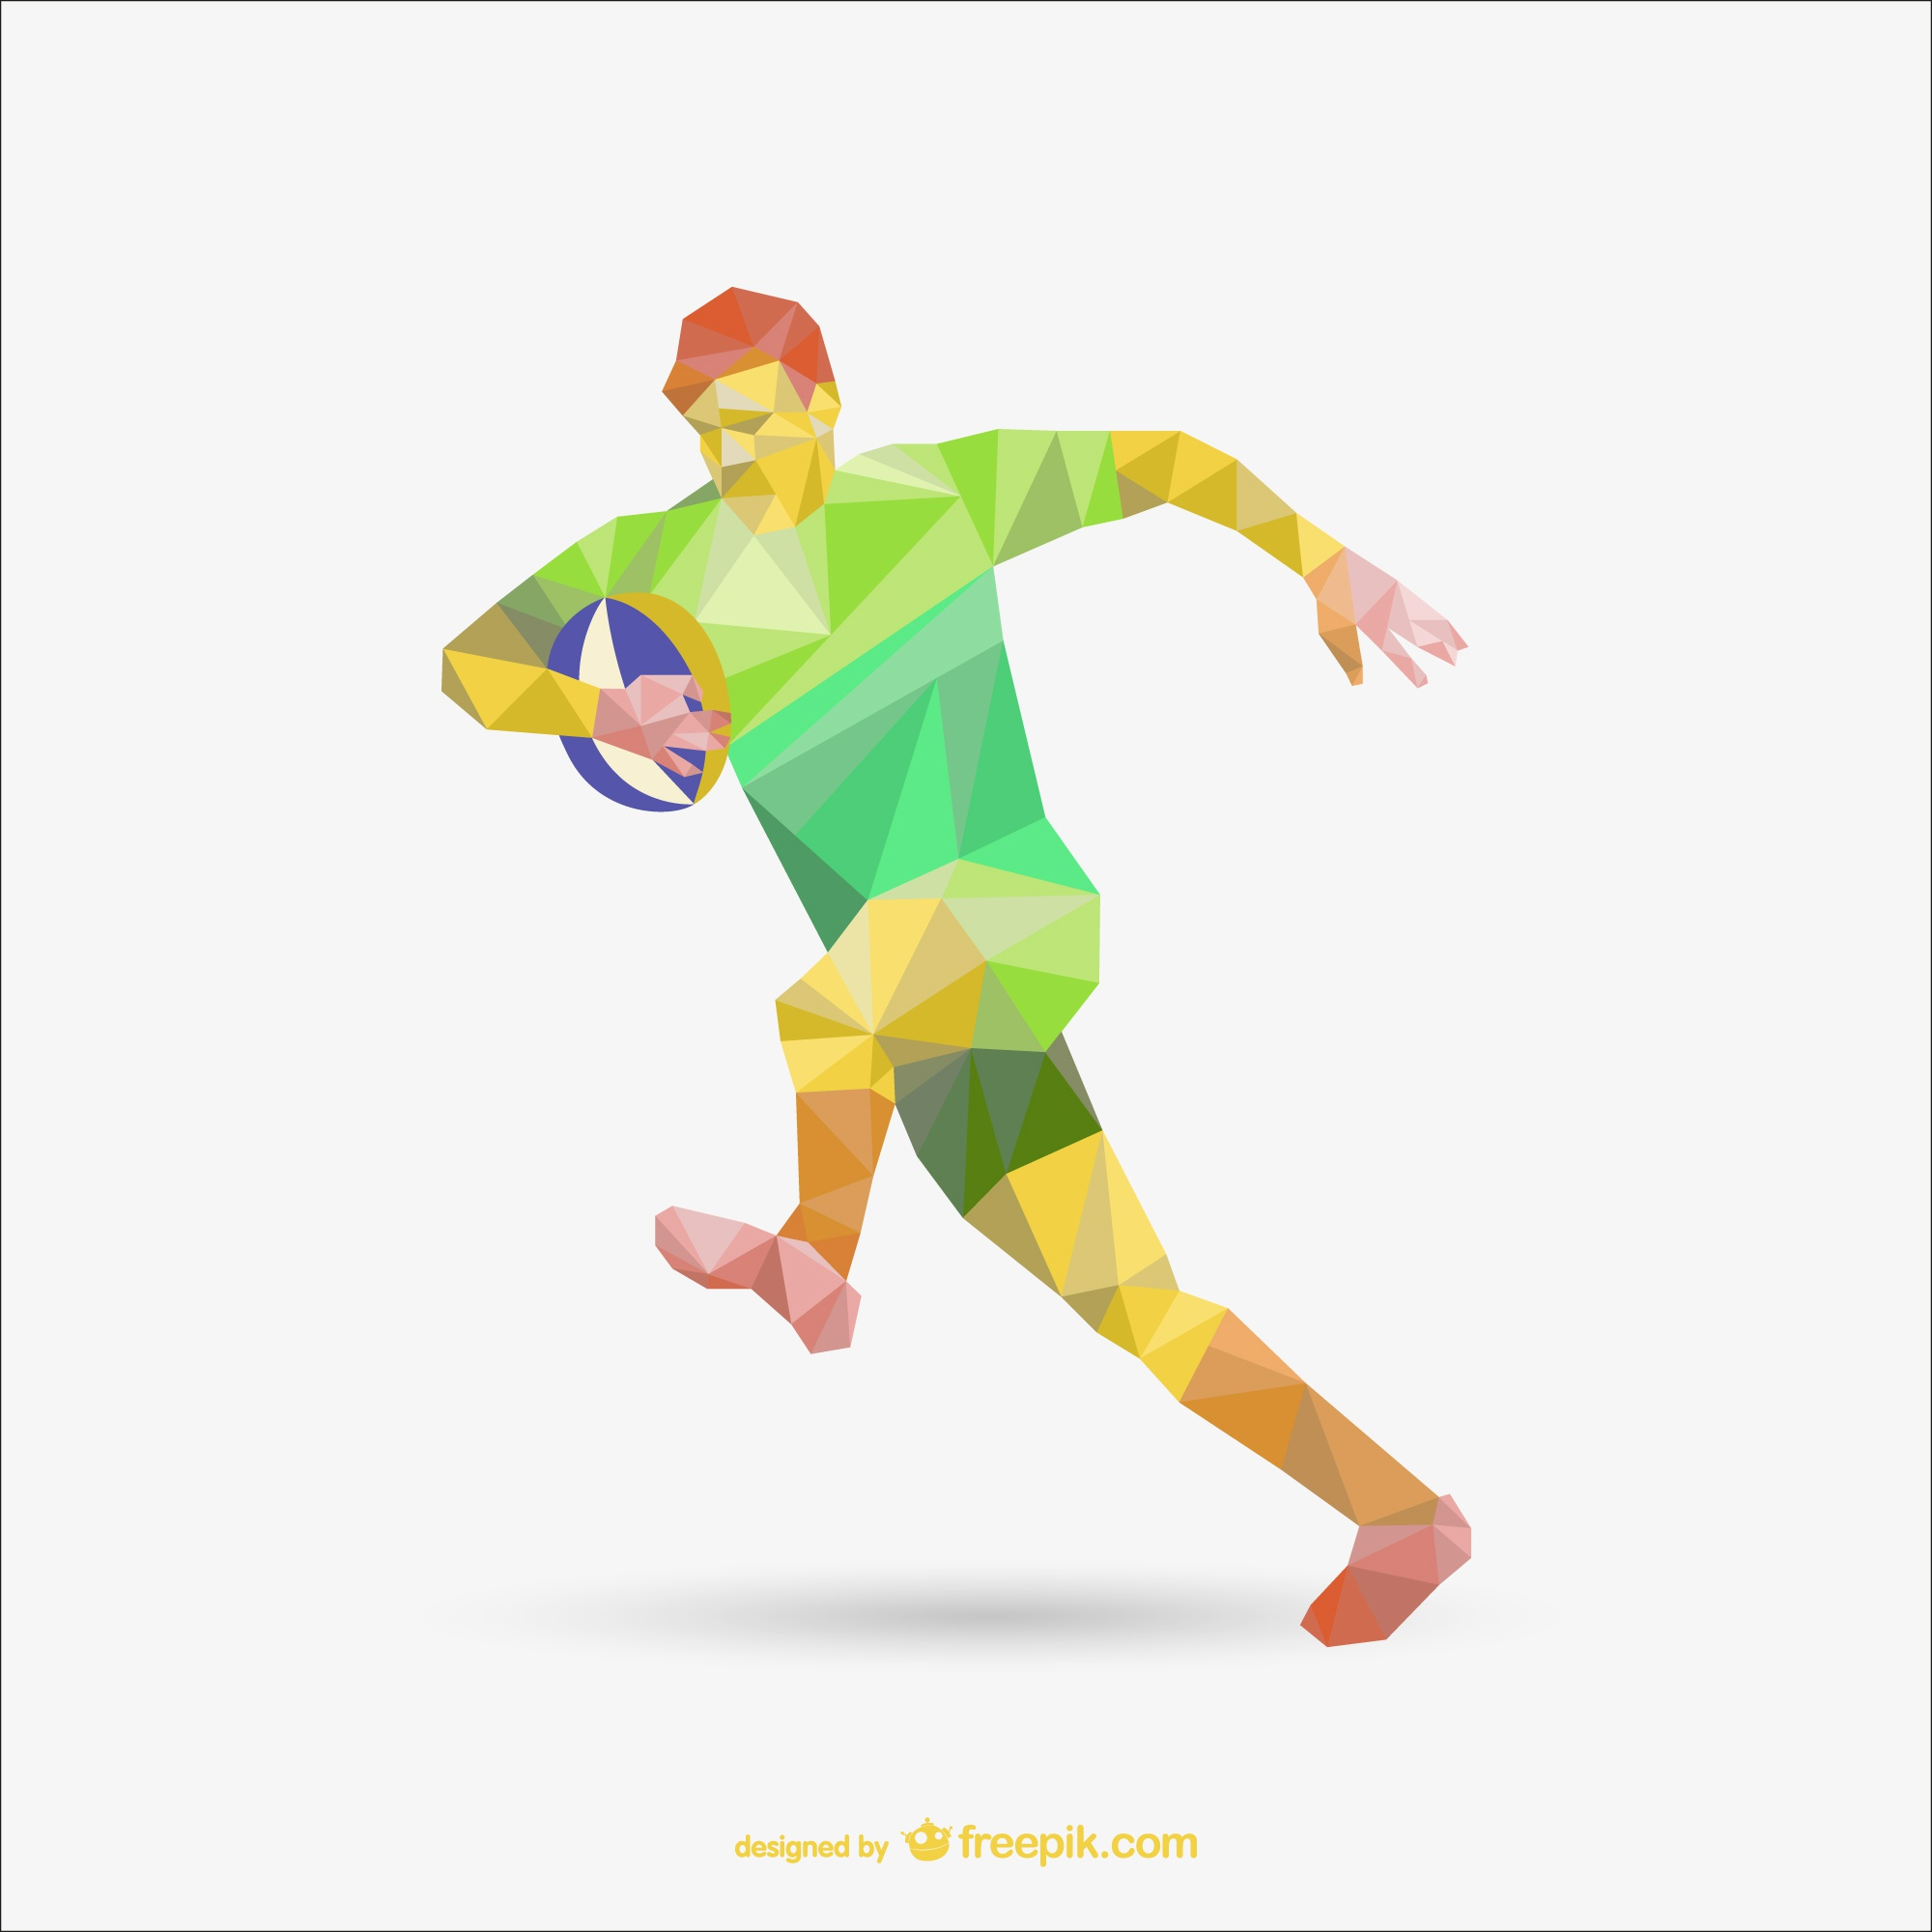 Polygonal rugby player illustration